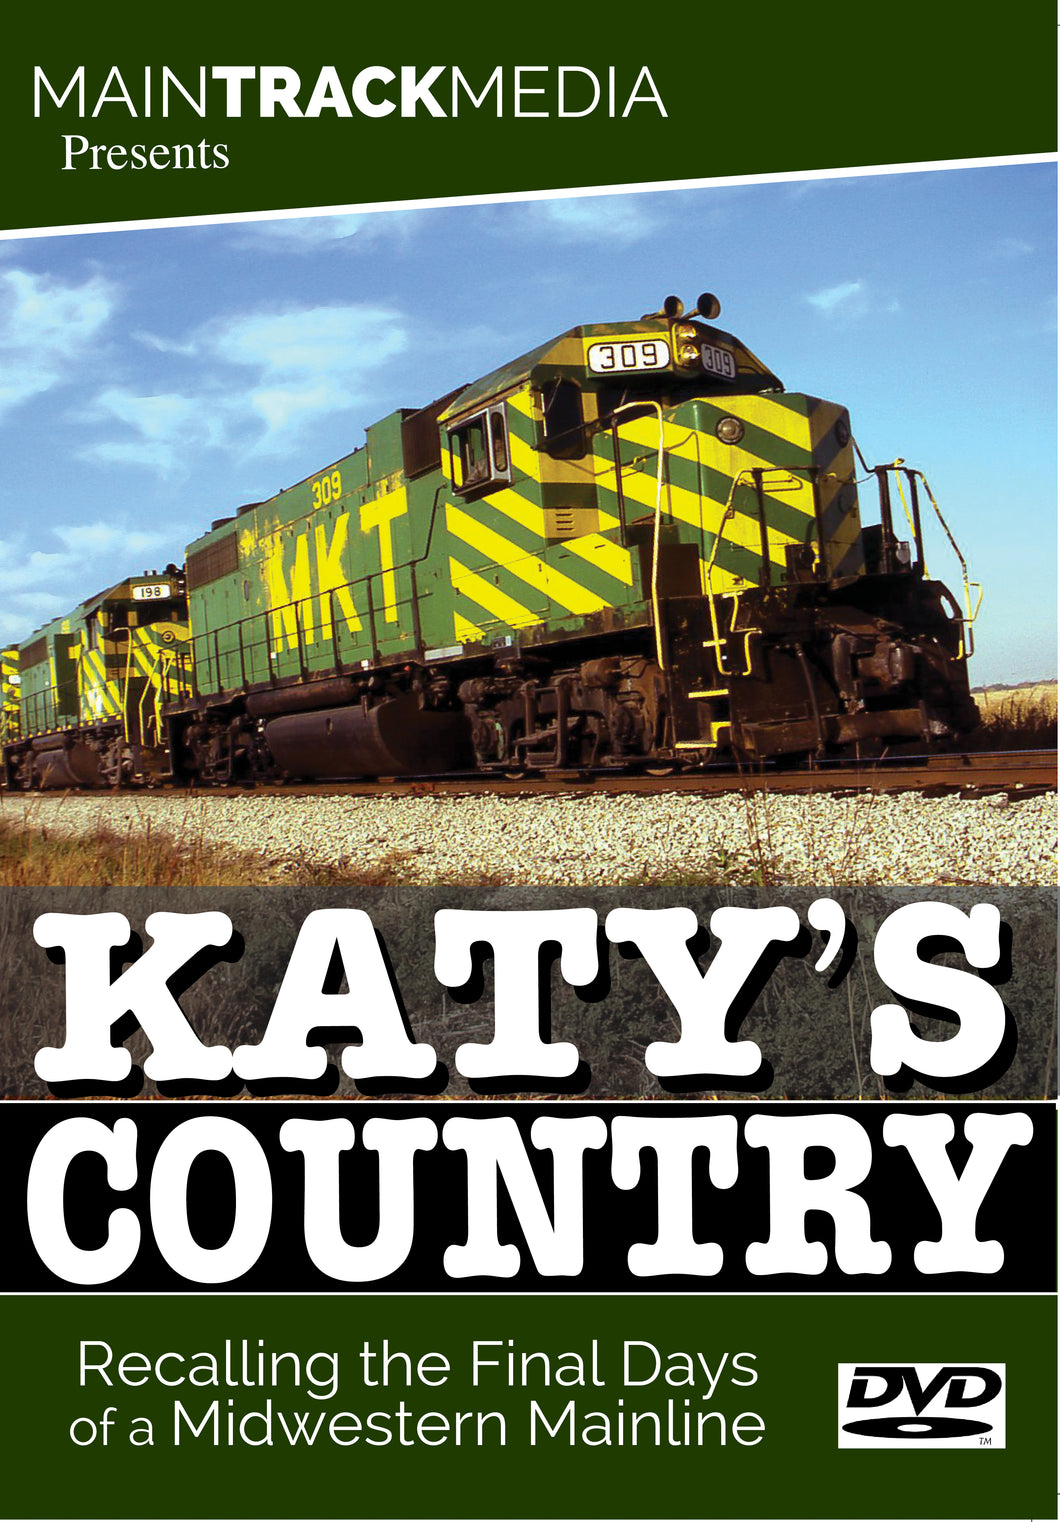 Katy's Country: Recalling the Final Days of a Midwestern Mainline (DVD Video)